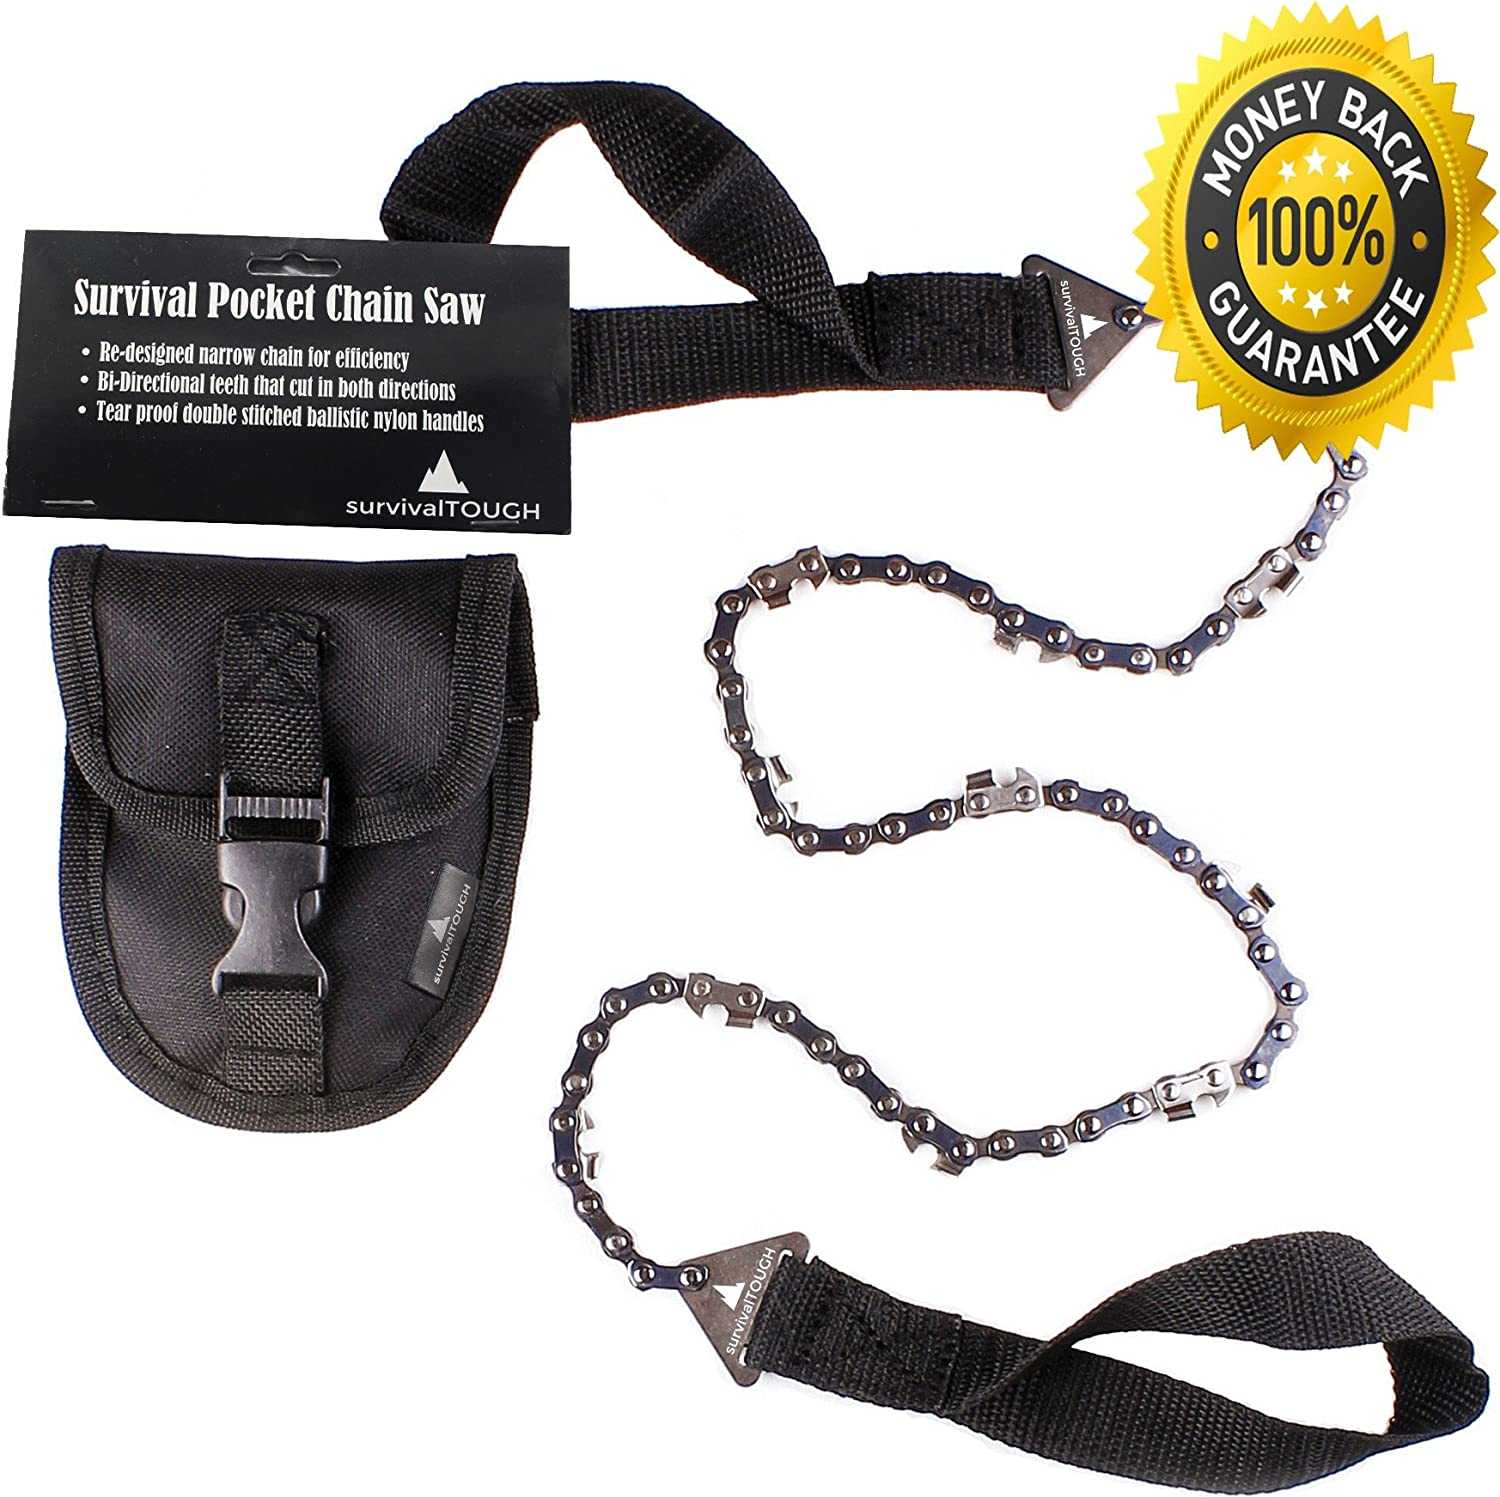 survivalTOUGH- 36-Inch Survival Pocket Chain Saw with Pouch 36 Inch